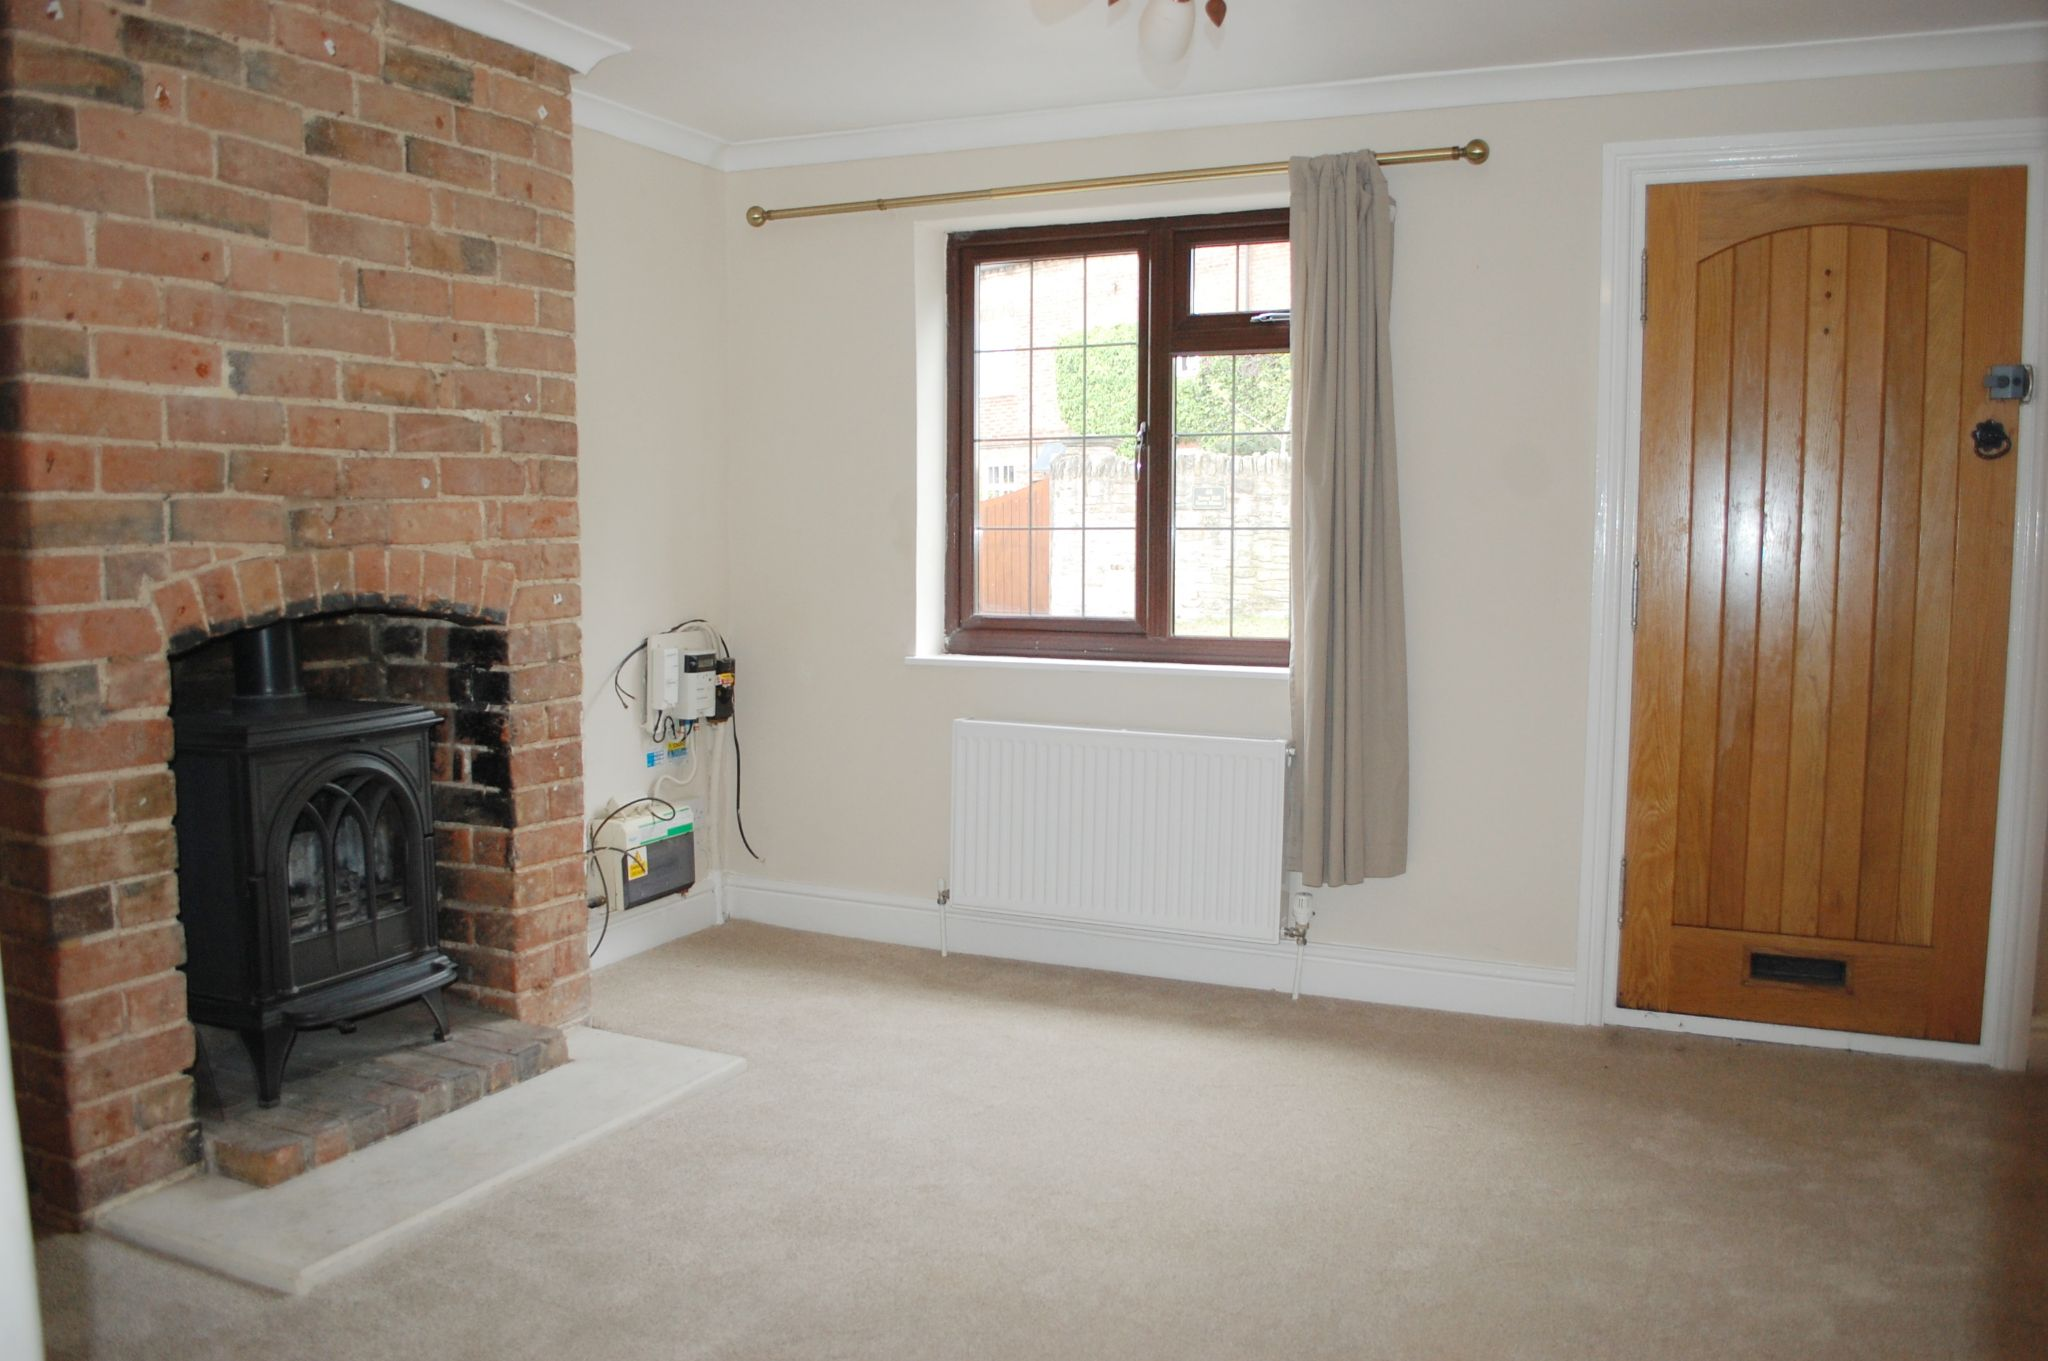 2 bedroom mid terraced house For Sale in Bidford On Avon, Alcester - Property photograph